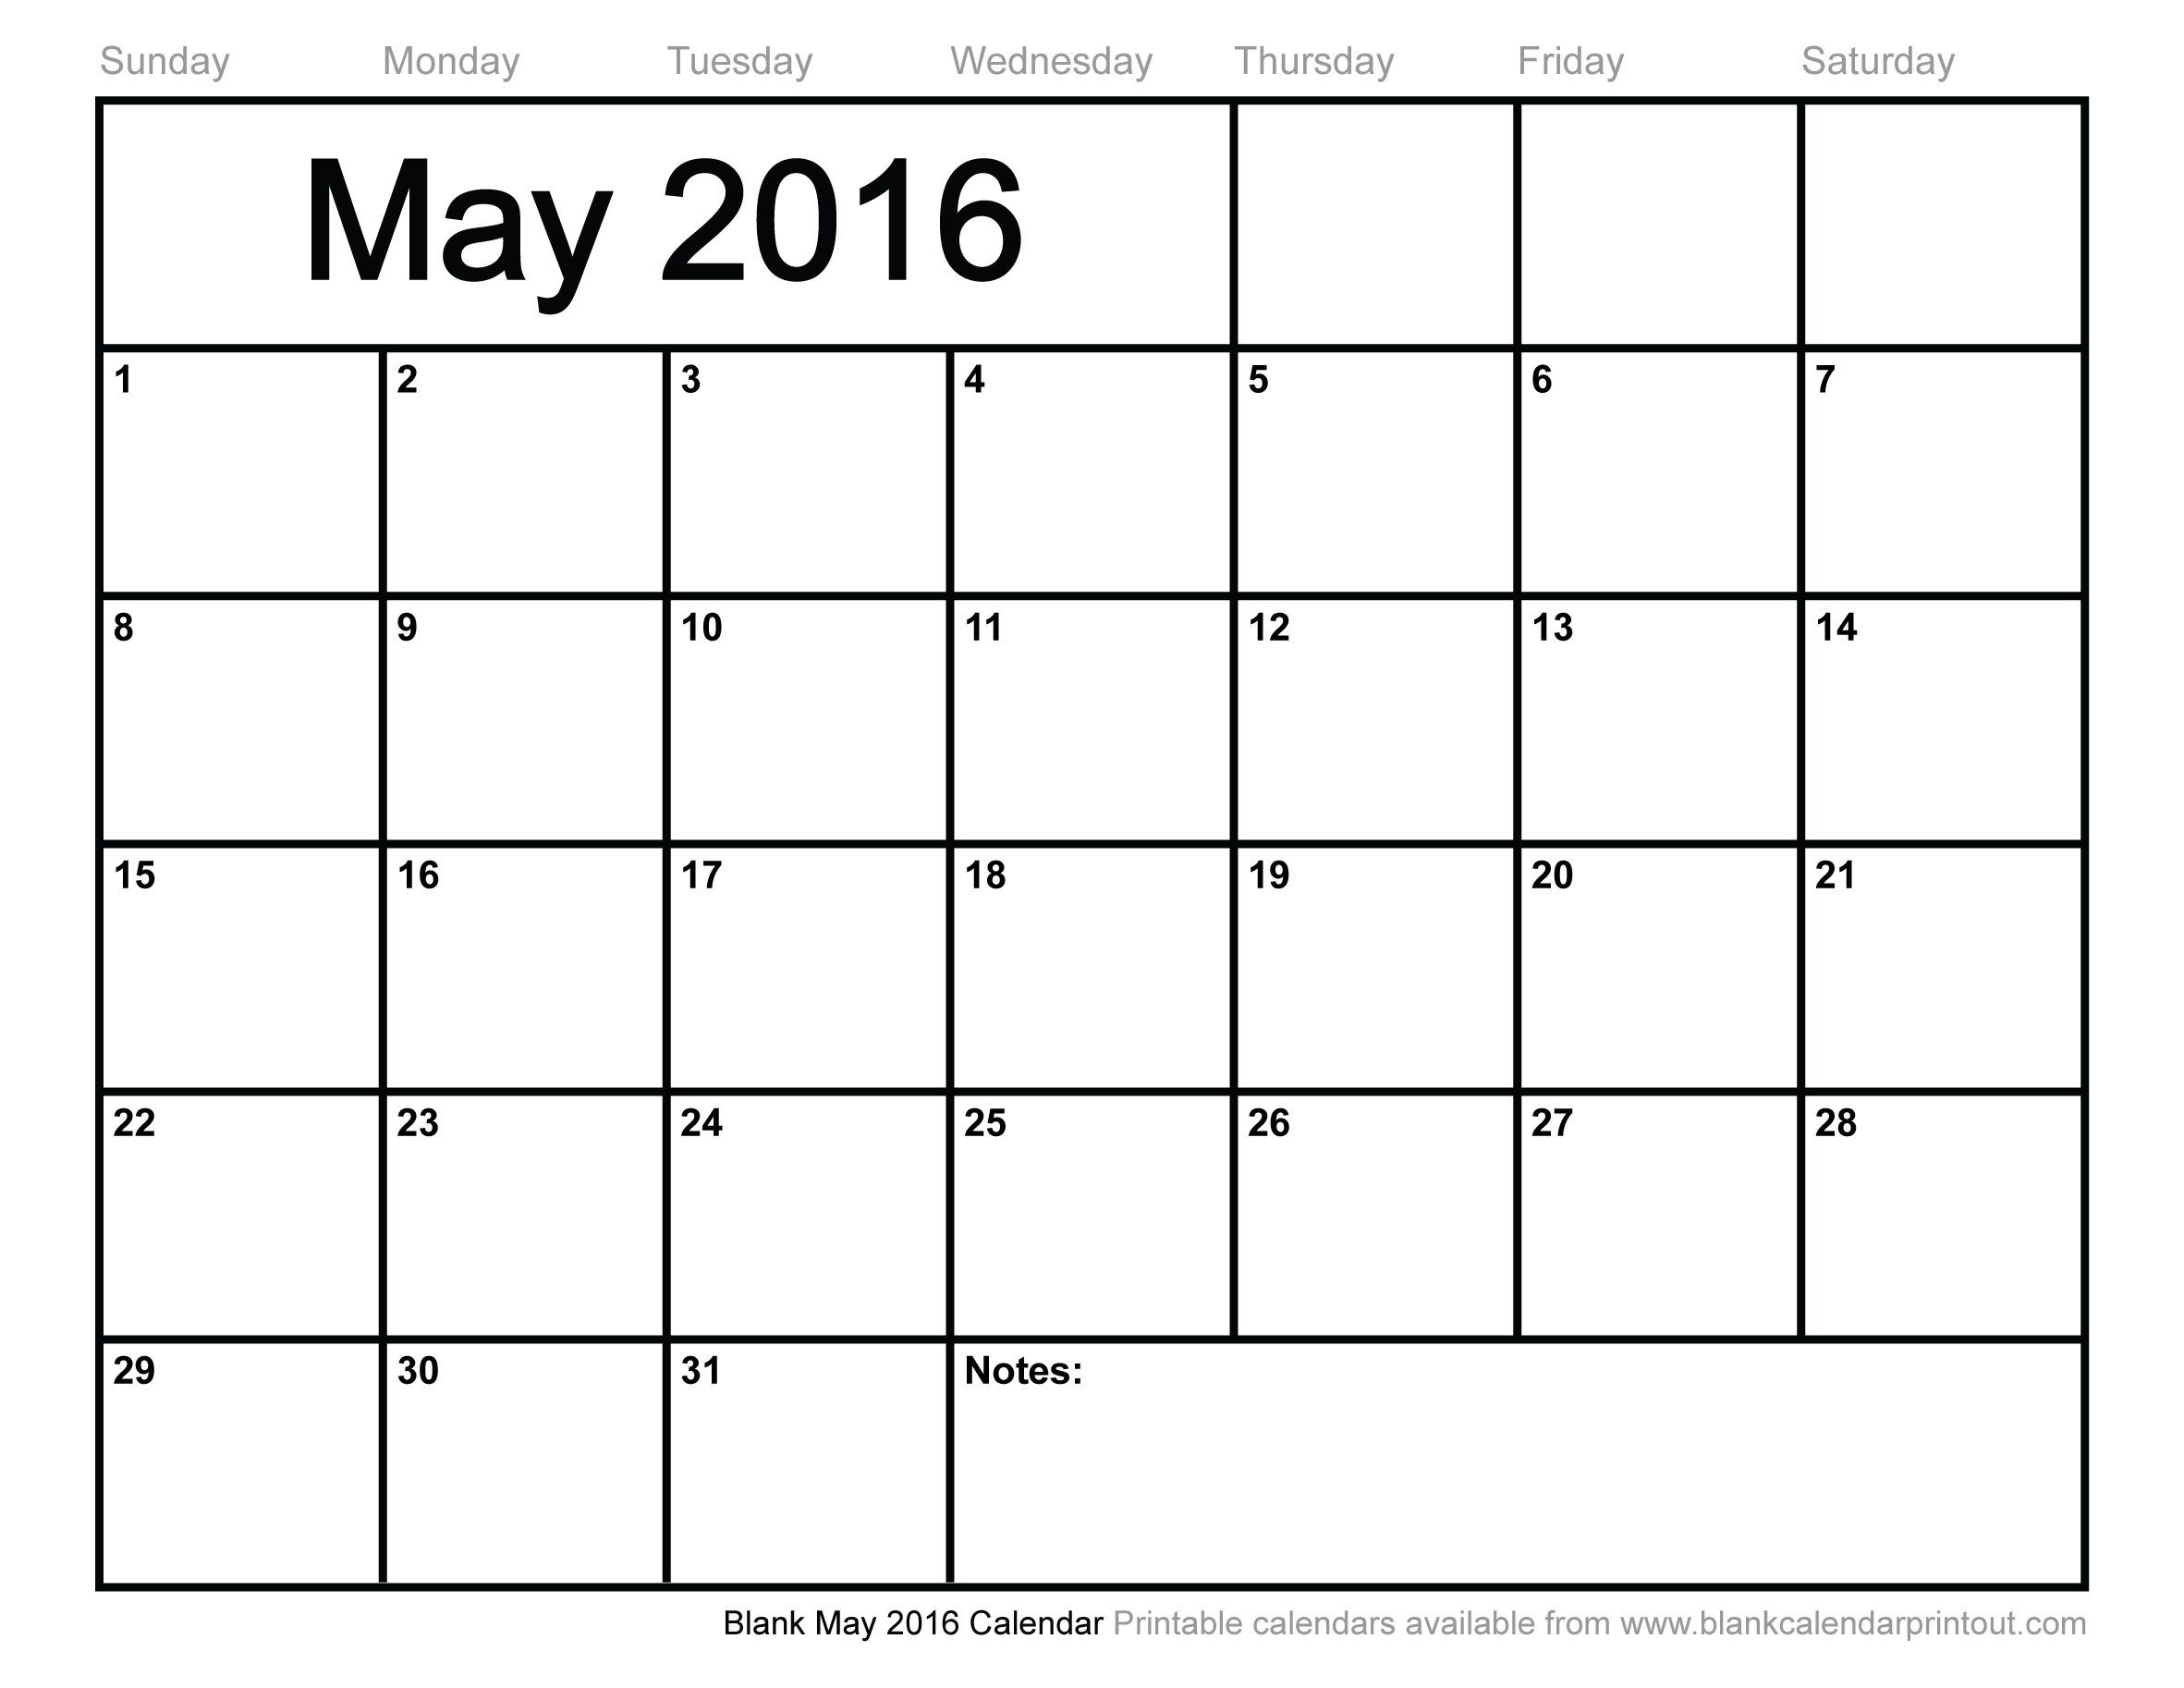 Blank May 2016 Calendar to Print